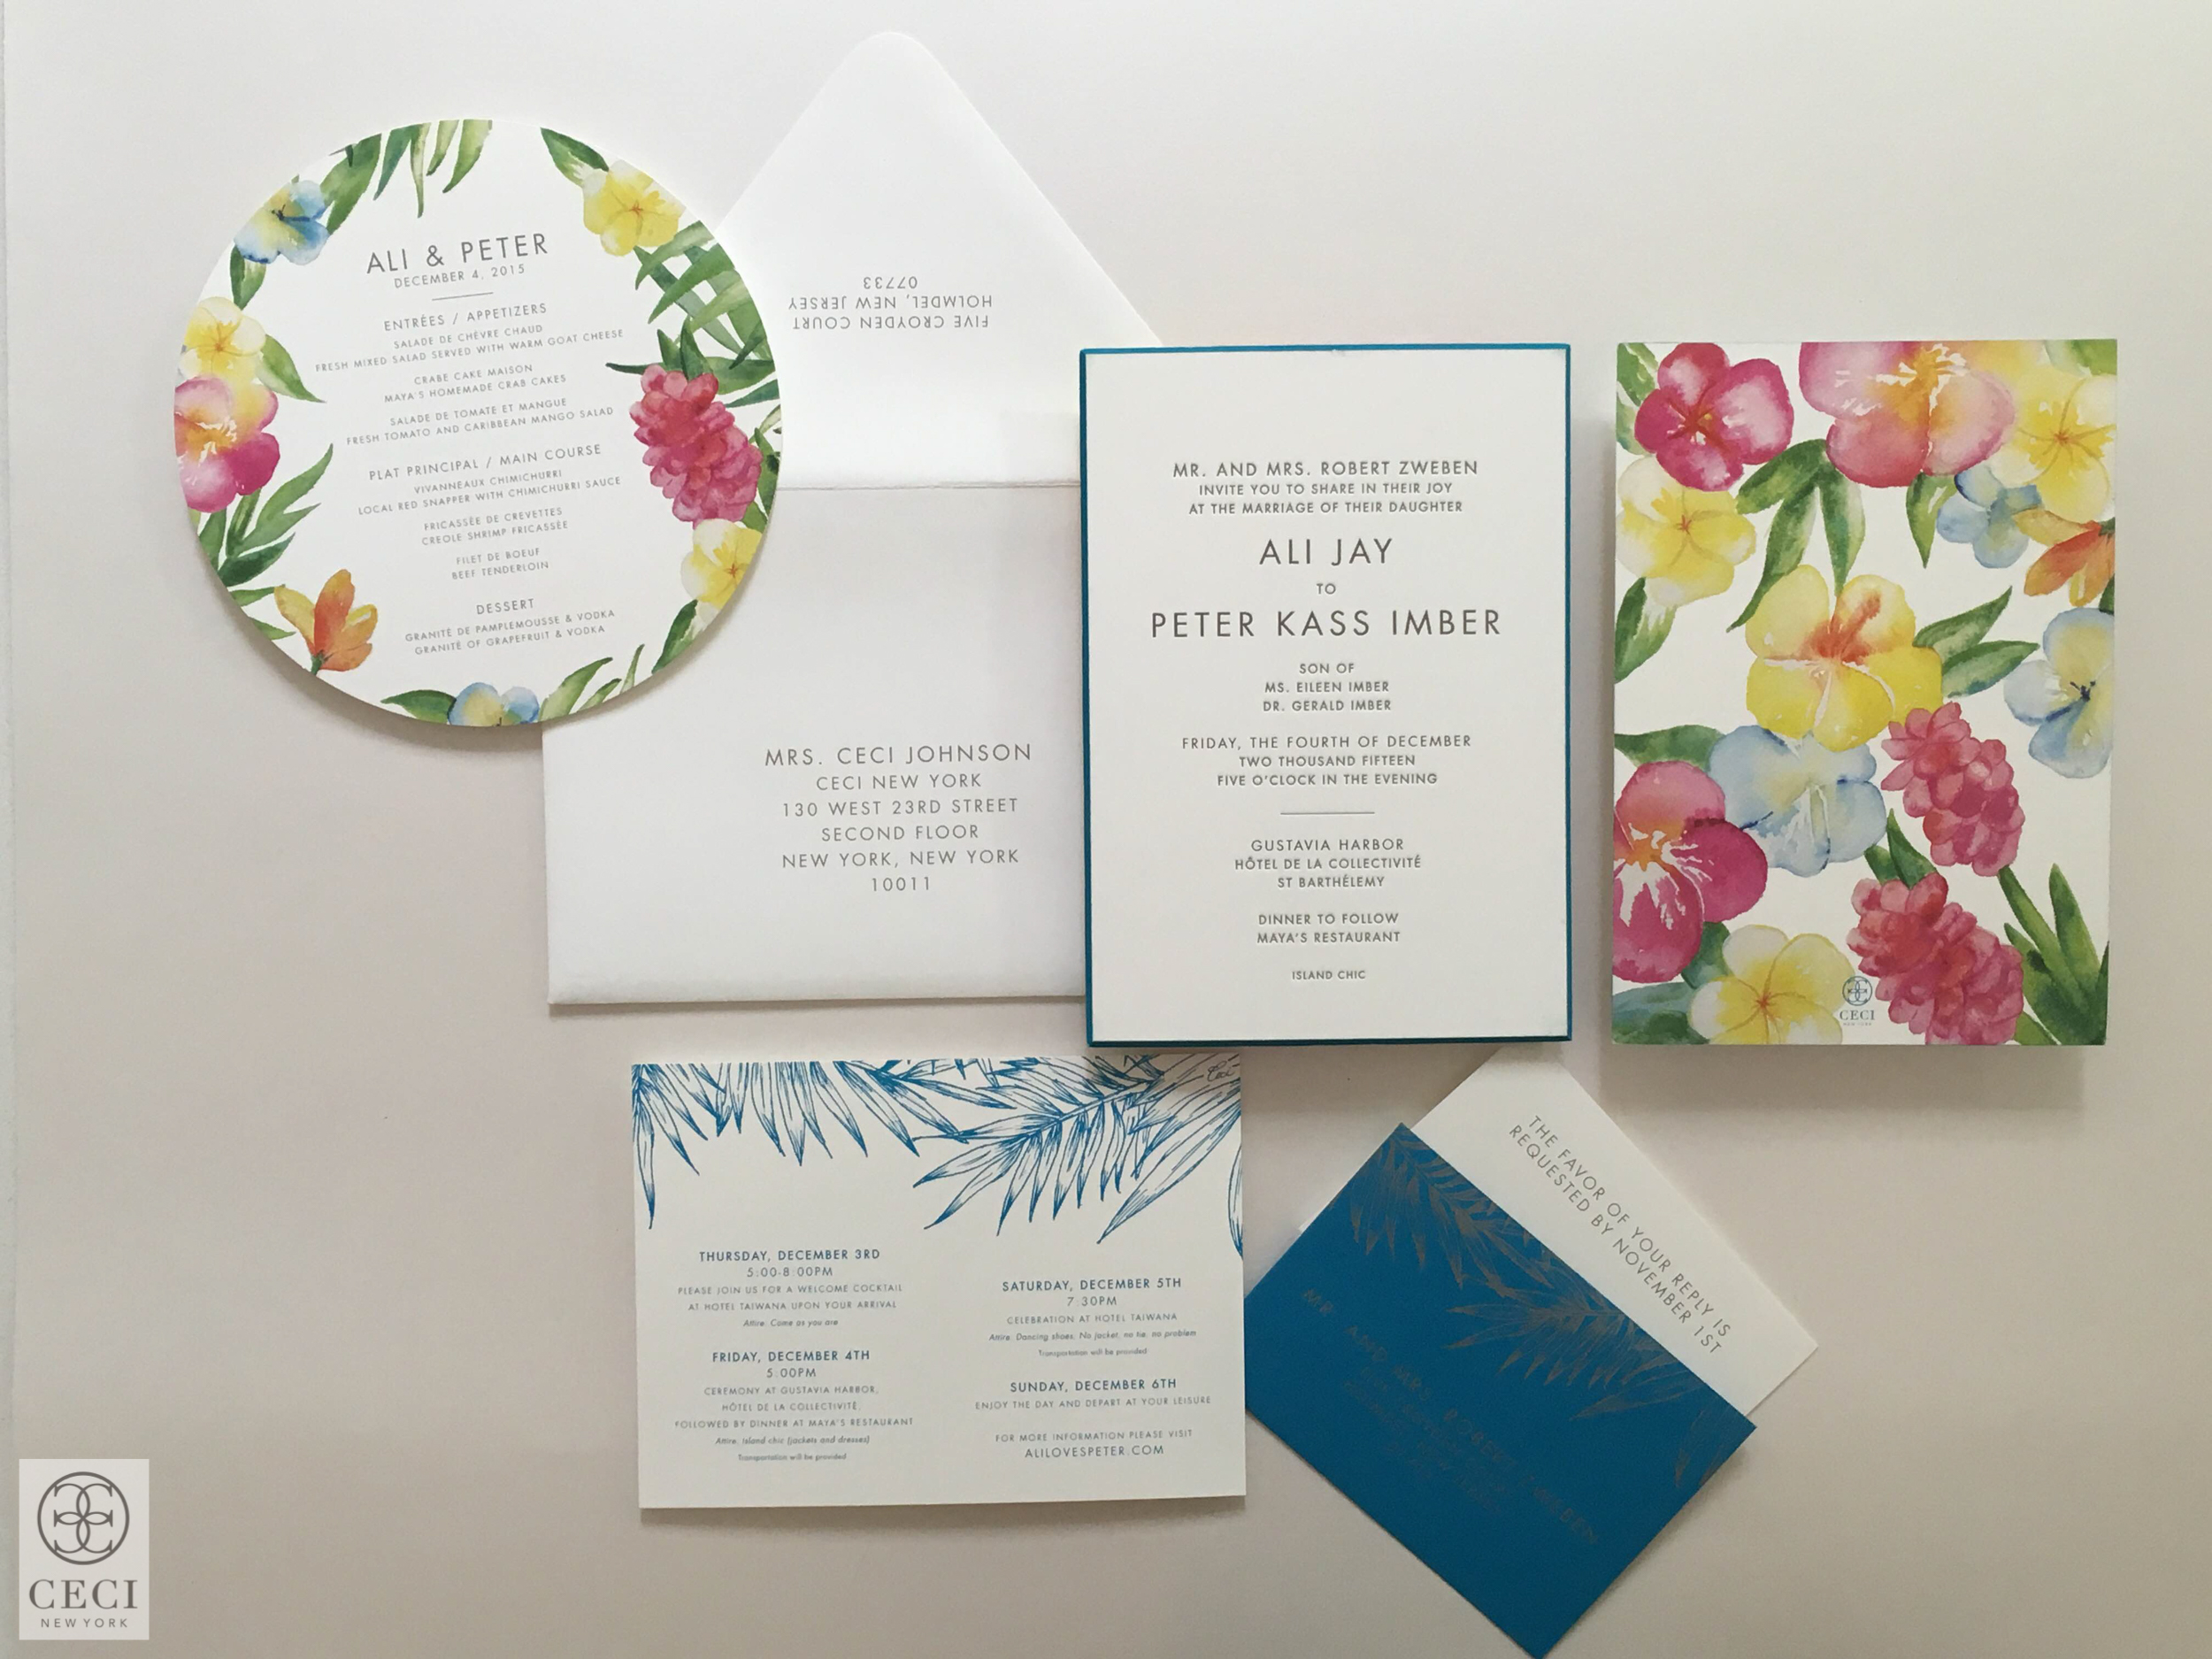 Ceci_New_York_Ceci_Style_Ceci_Johnson_Luxury_Lifestyle_Destination_St._Barts_Wedding_Letterpress_Watercolor_Floral_Hand_Painted_Inspiration_Design_Custom_Couture_Personalized_Invitations_-5.jpg